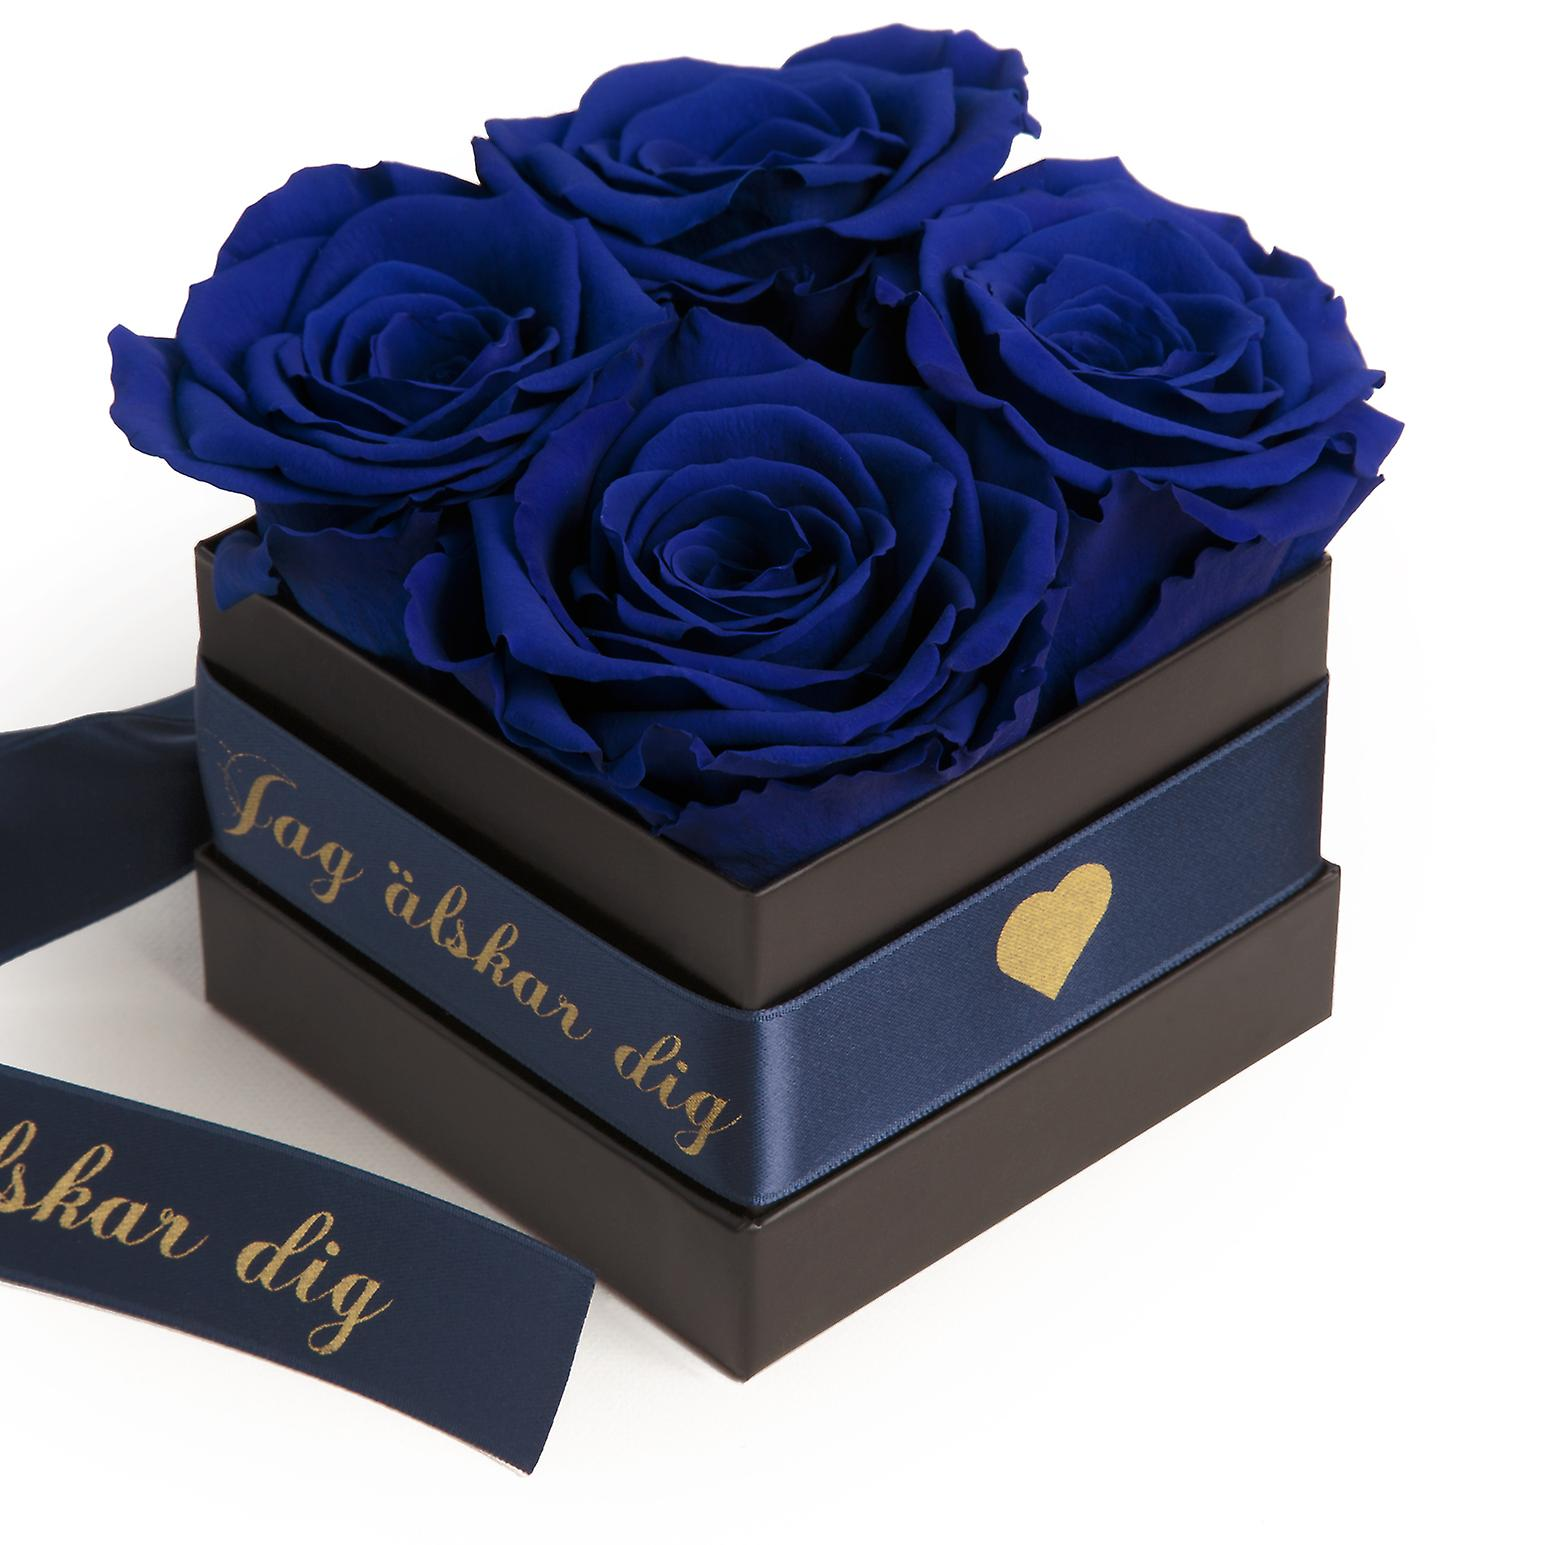 JAG älskar dig Flowerbox with 4 preserved roses blue and satin ribbon shelf life 3 years